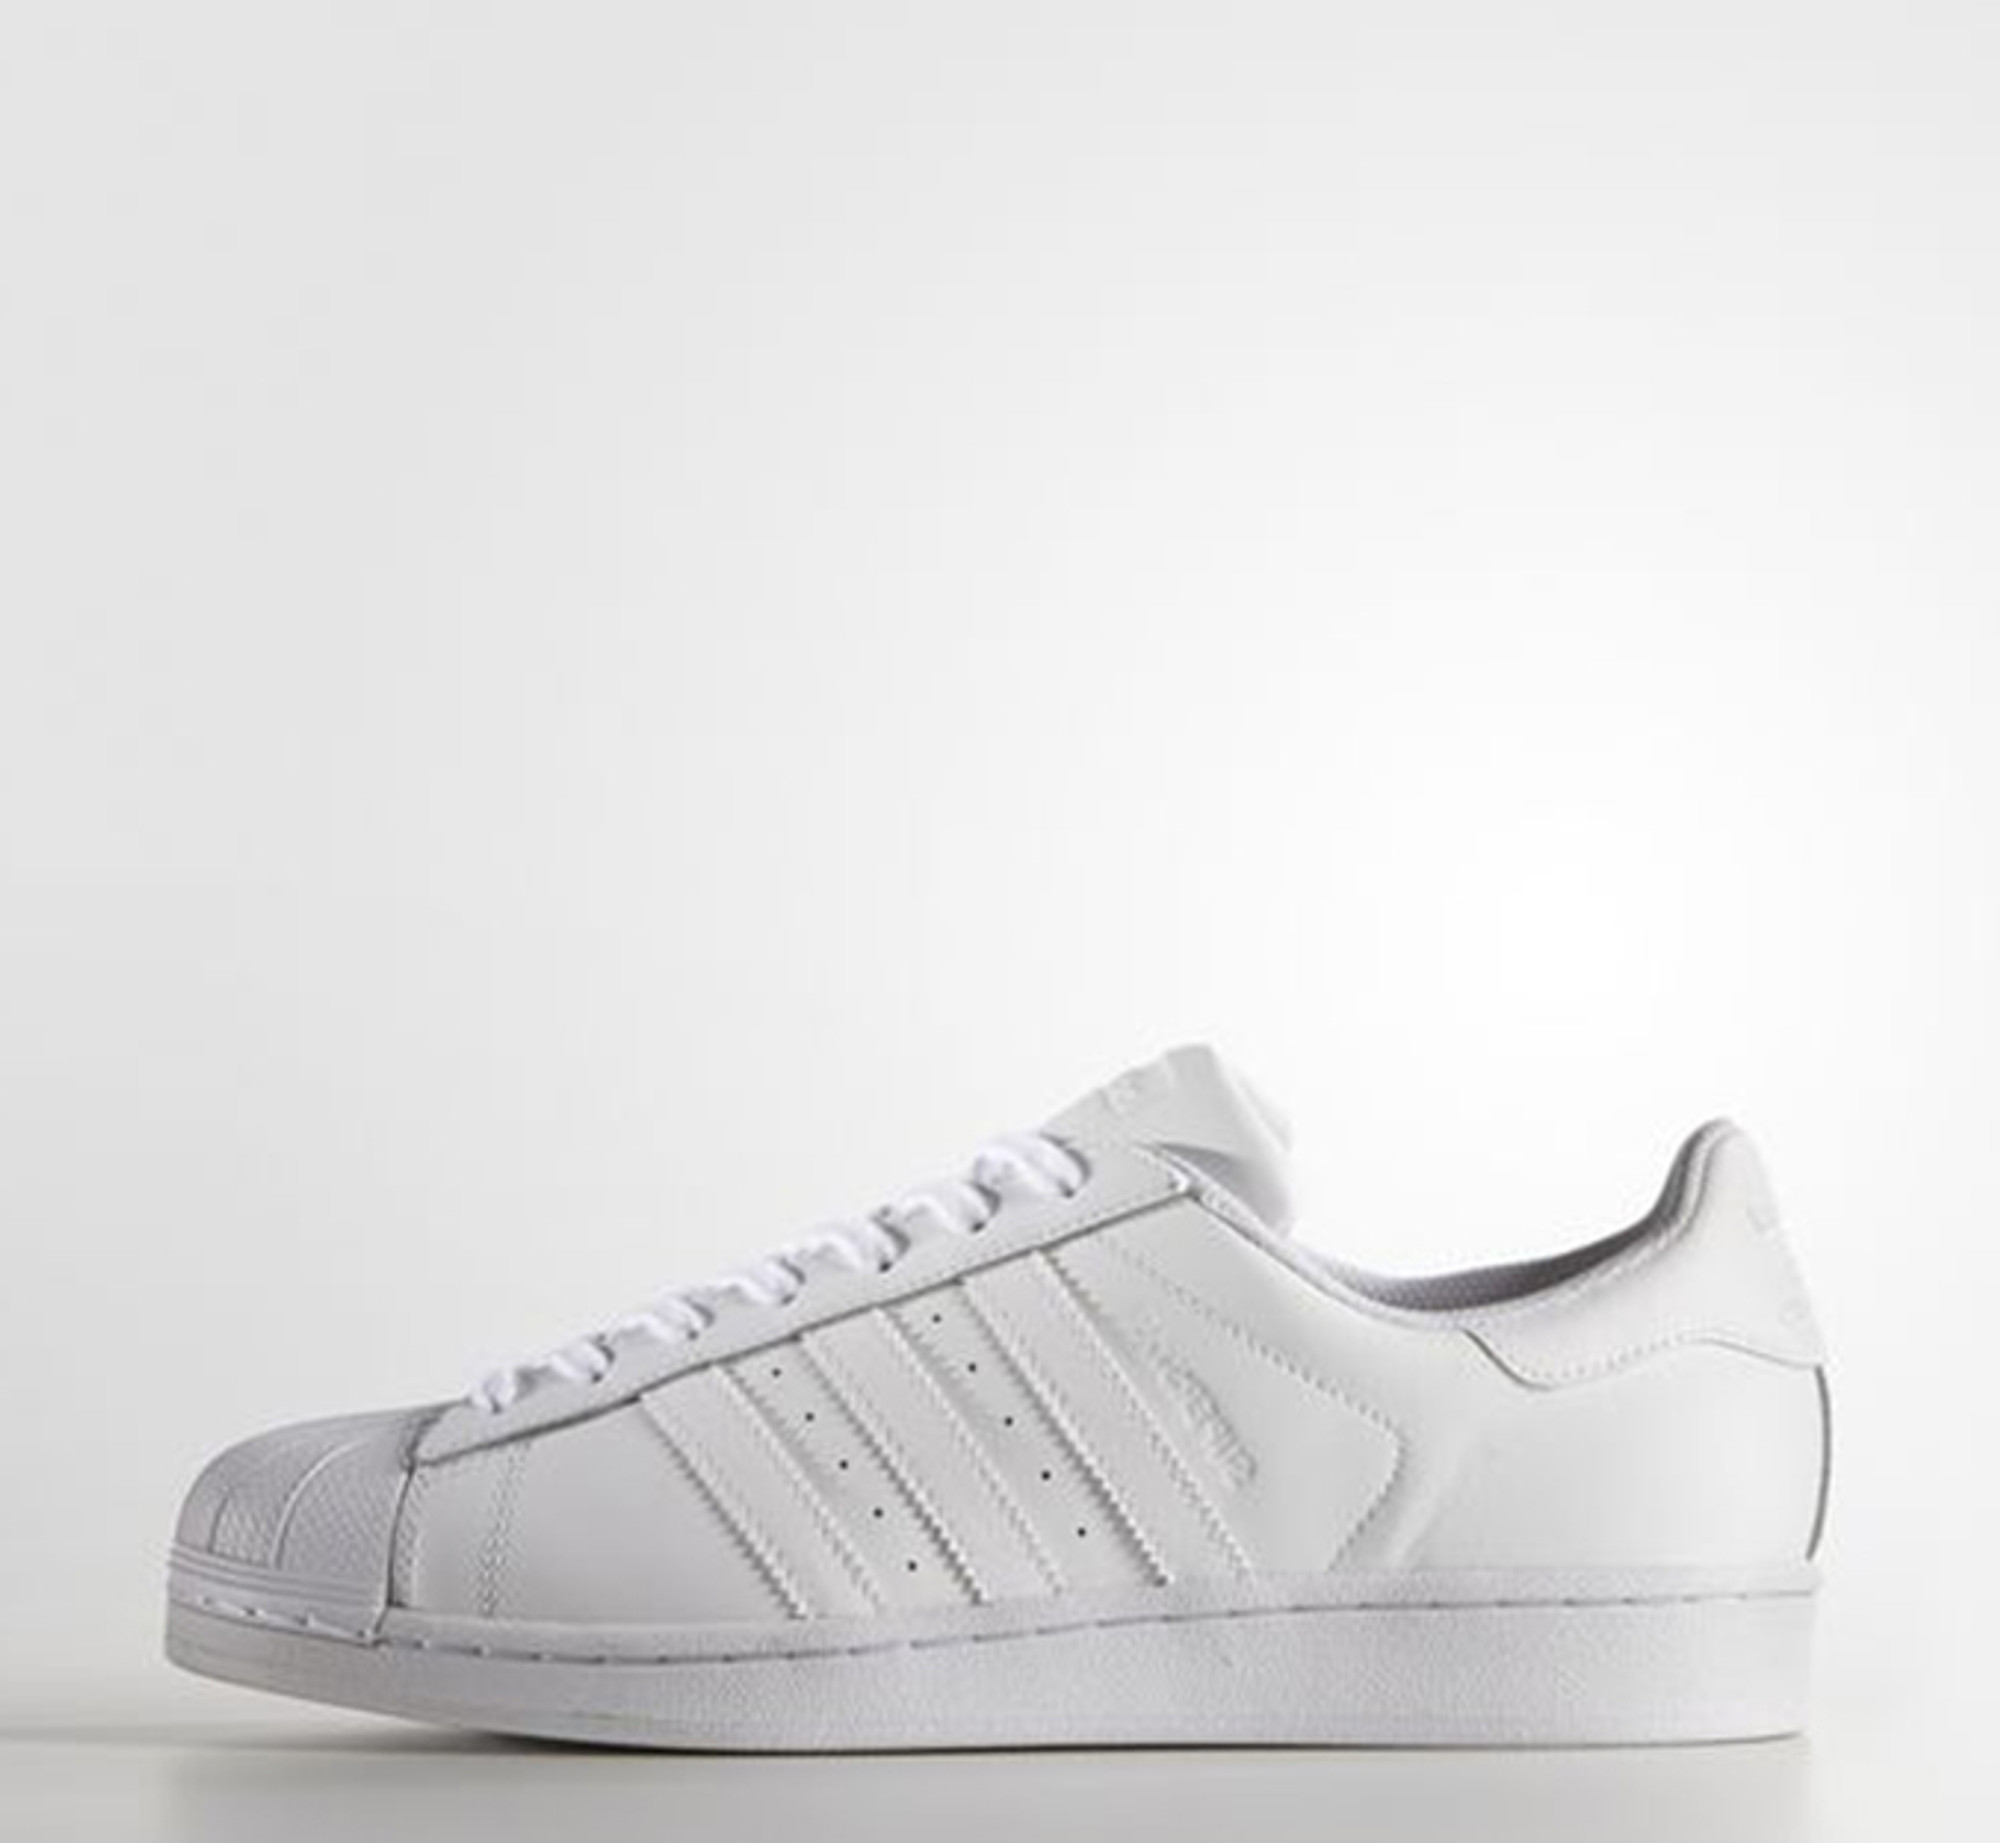 Cheap Adidas Originals Men's Superstar Foundation Shoes BB2240